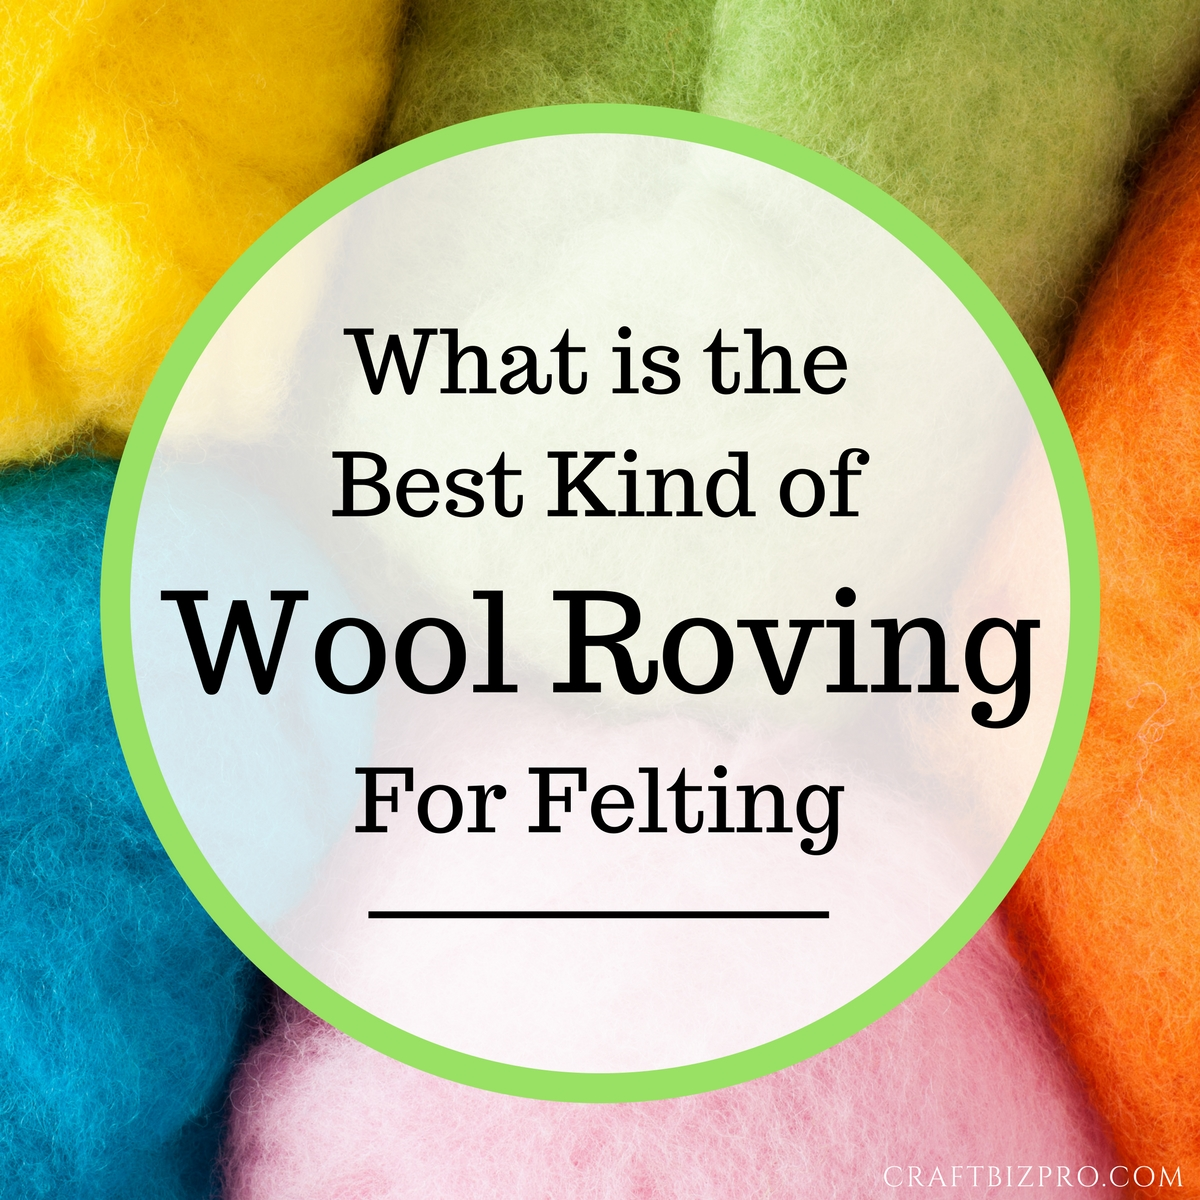 What is the Best Kind Of Wool Roving for Felting?